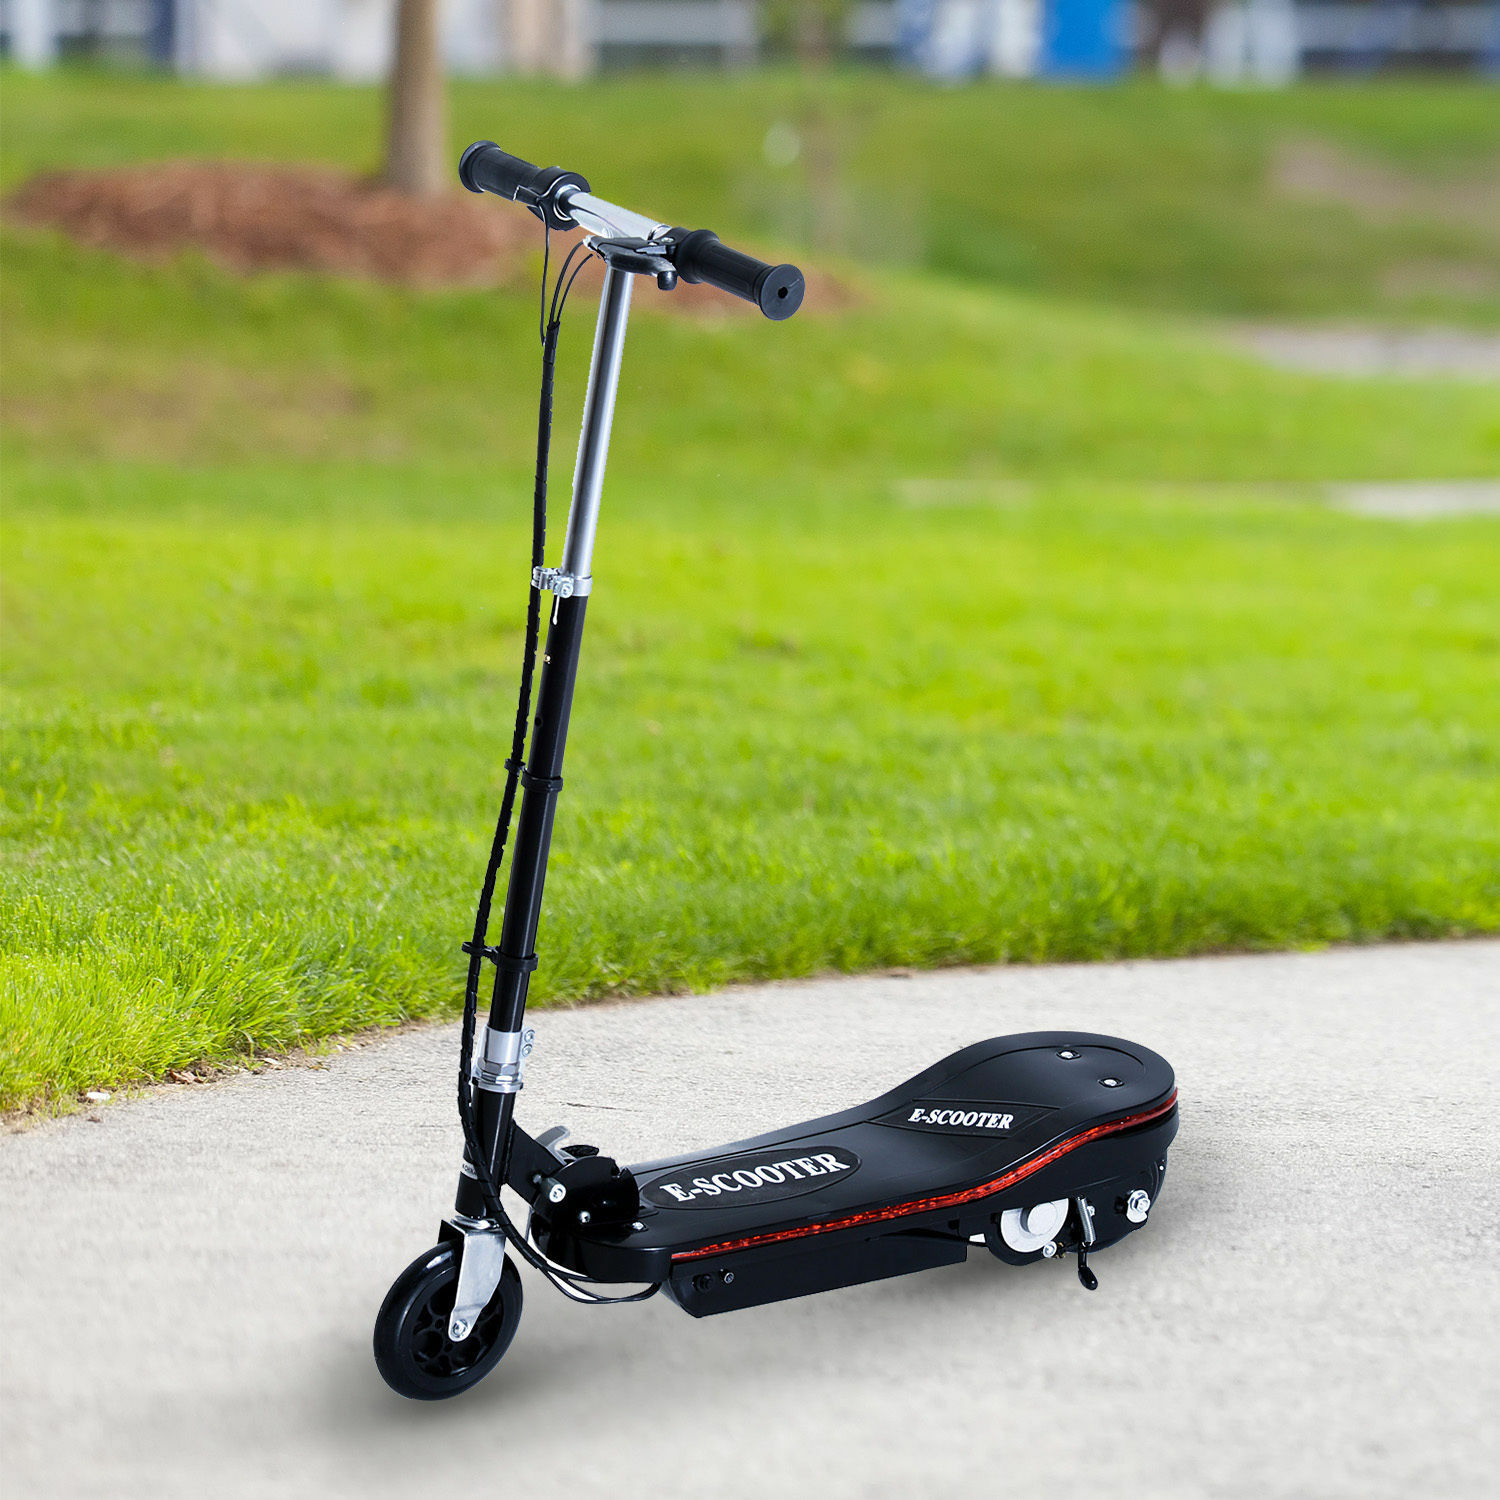 Aosom 120W Folding Kids Electric Scooter Adjustable T-bar Motorized E-Bike